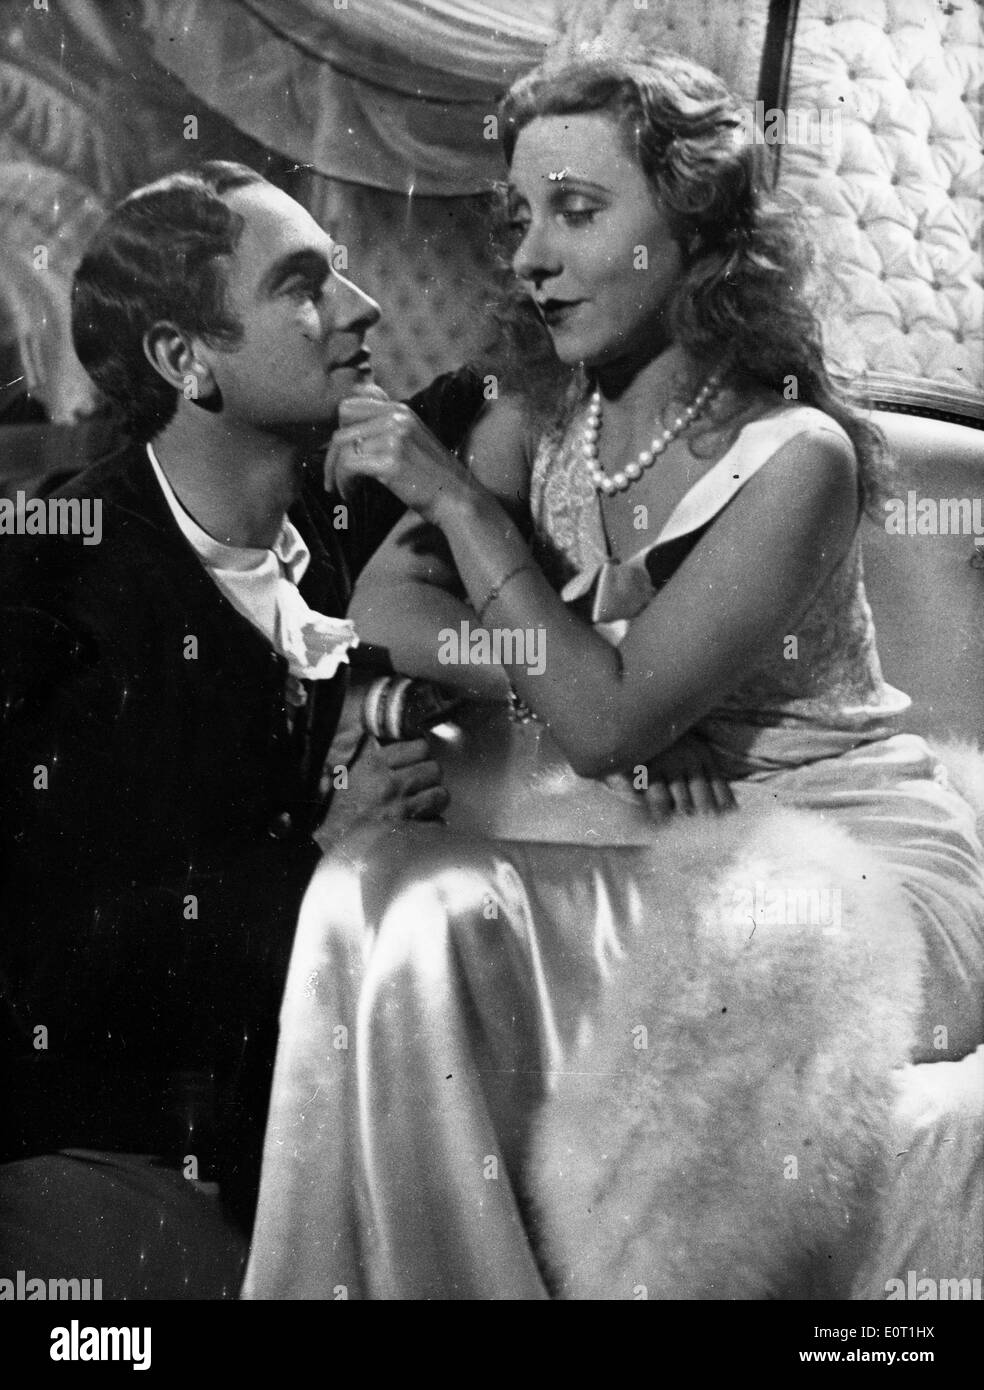 Actors Pierre Fresnay and Yvonne Printemps co-star